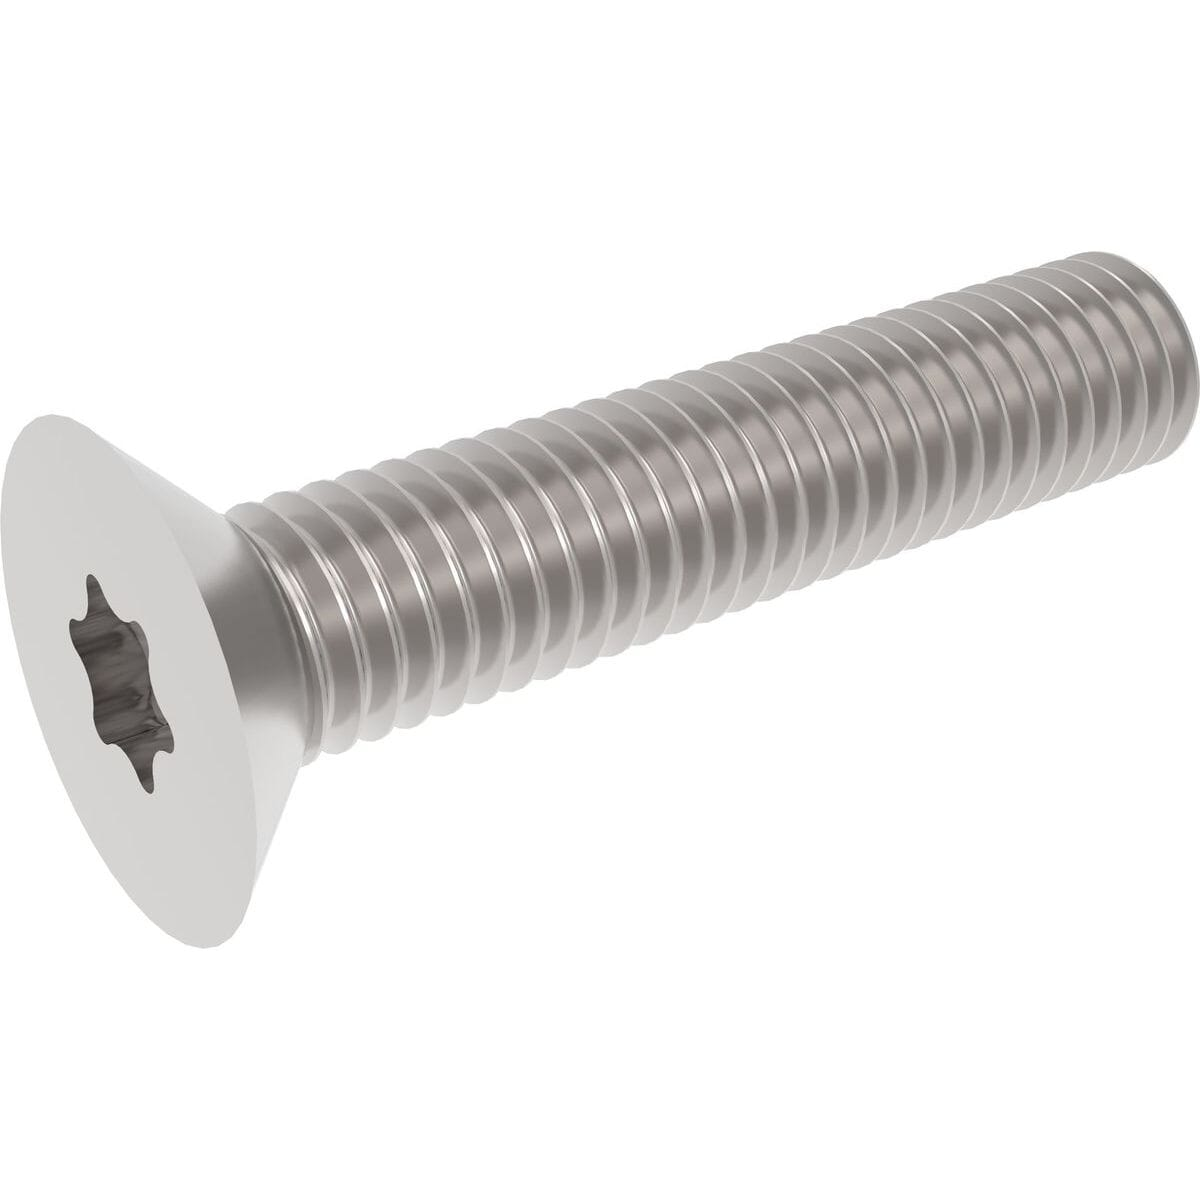 M2.5 x 14mm Torx Countersunk Screws (ISO 14581) - Marine Stainless Steel (A4)